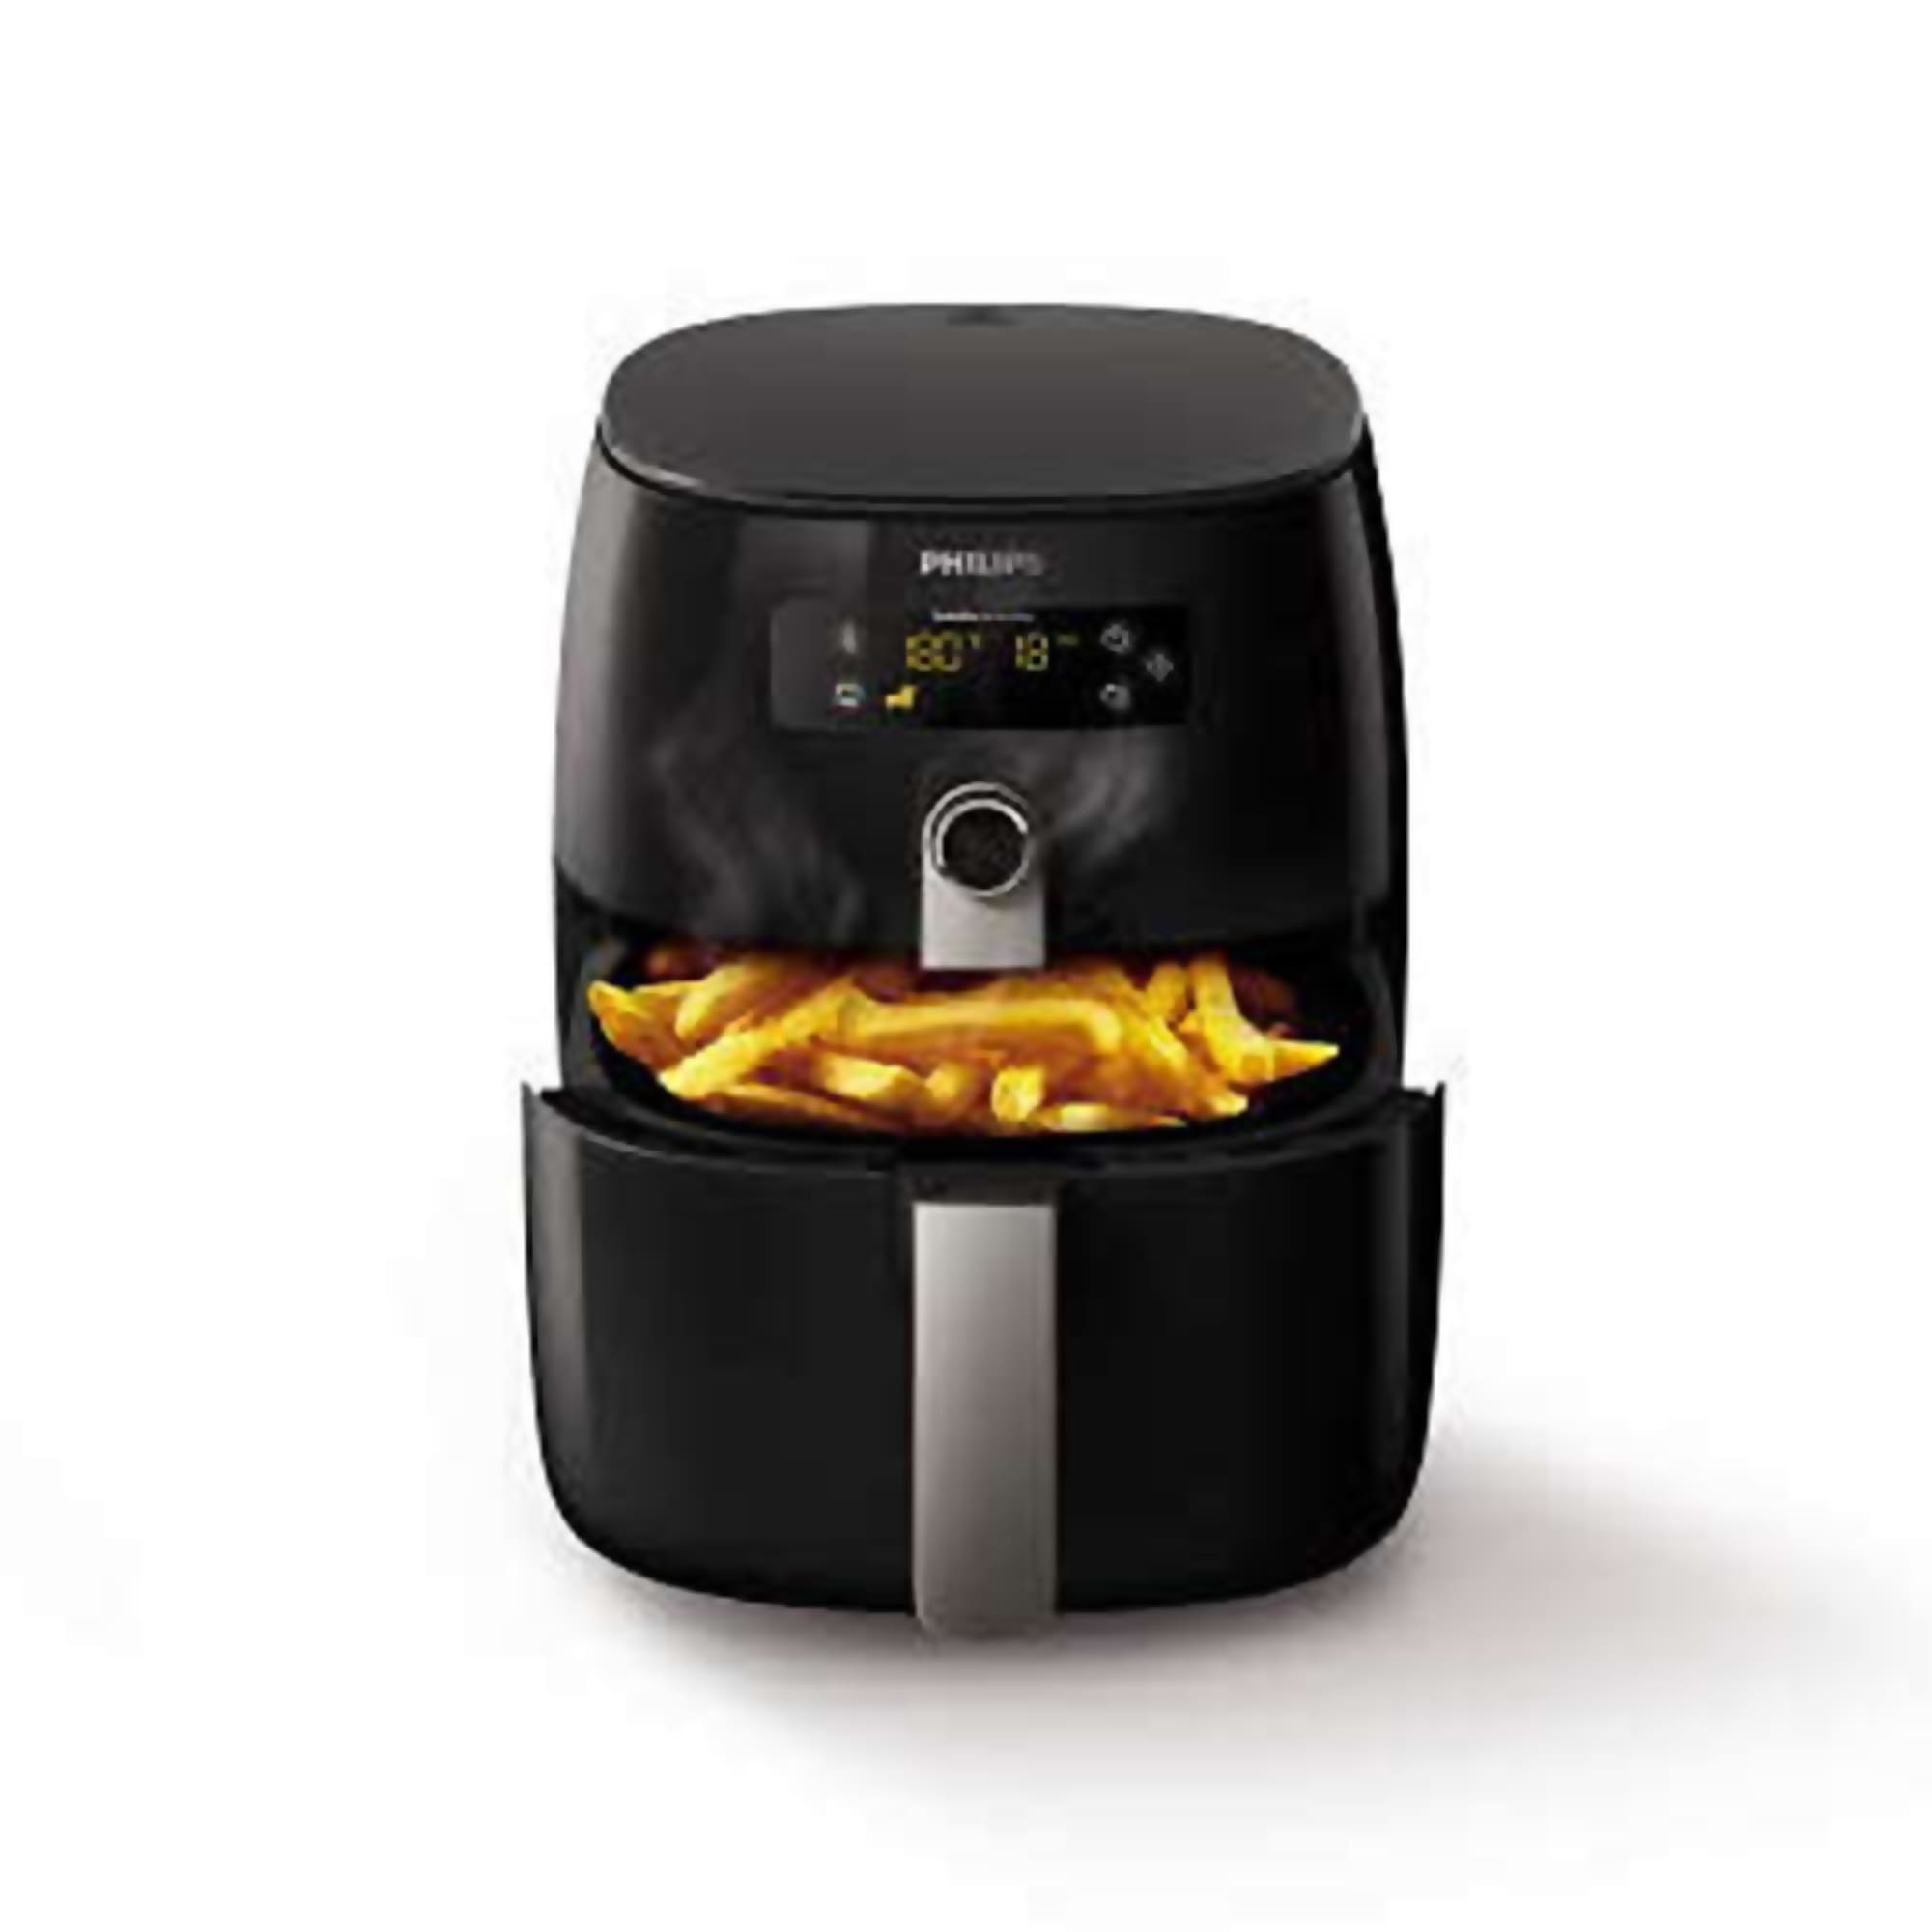 philips turbostar airfryer hd9643 di end 9 1 2020 4 37 pm